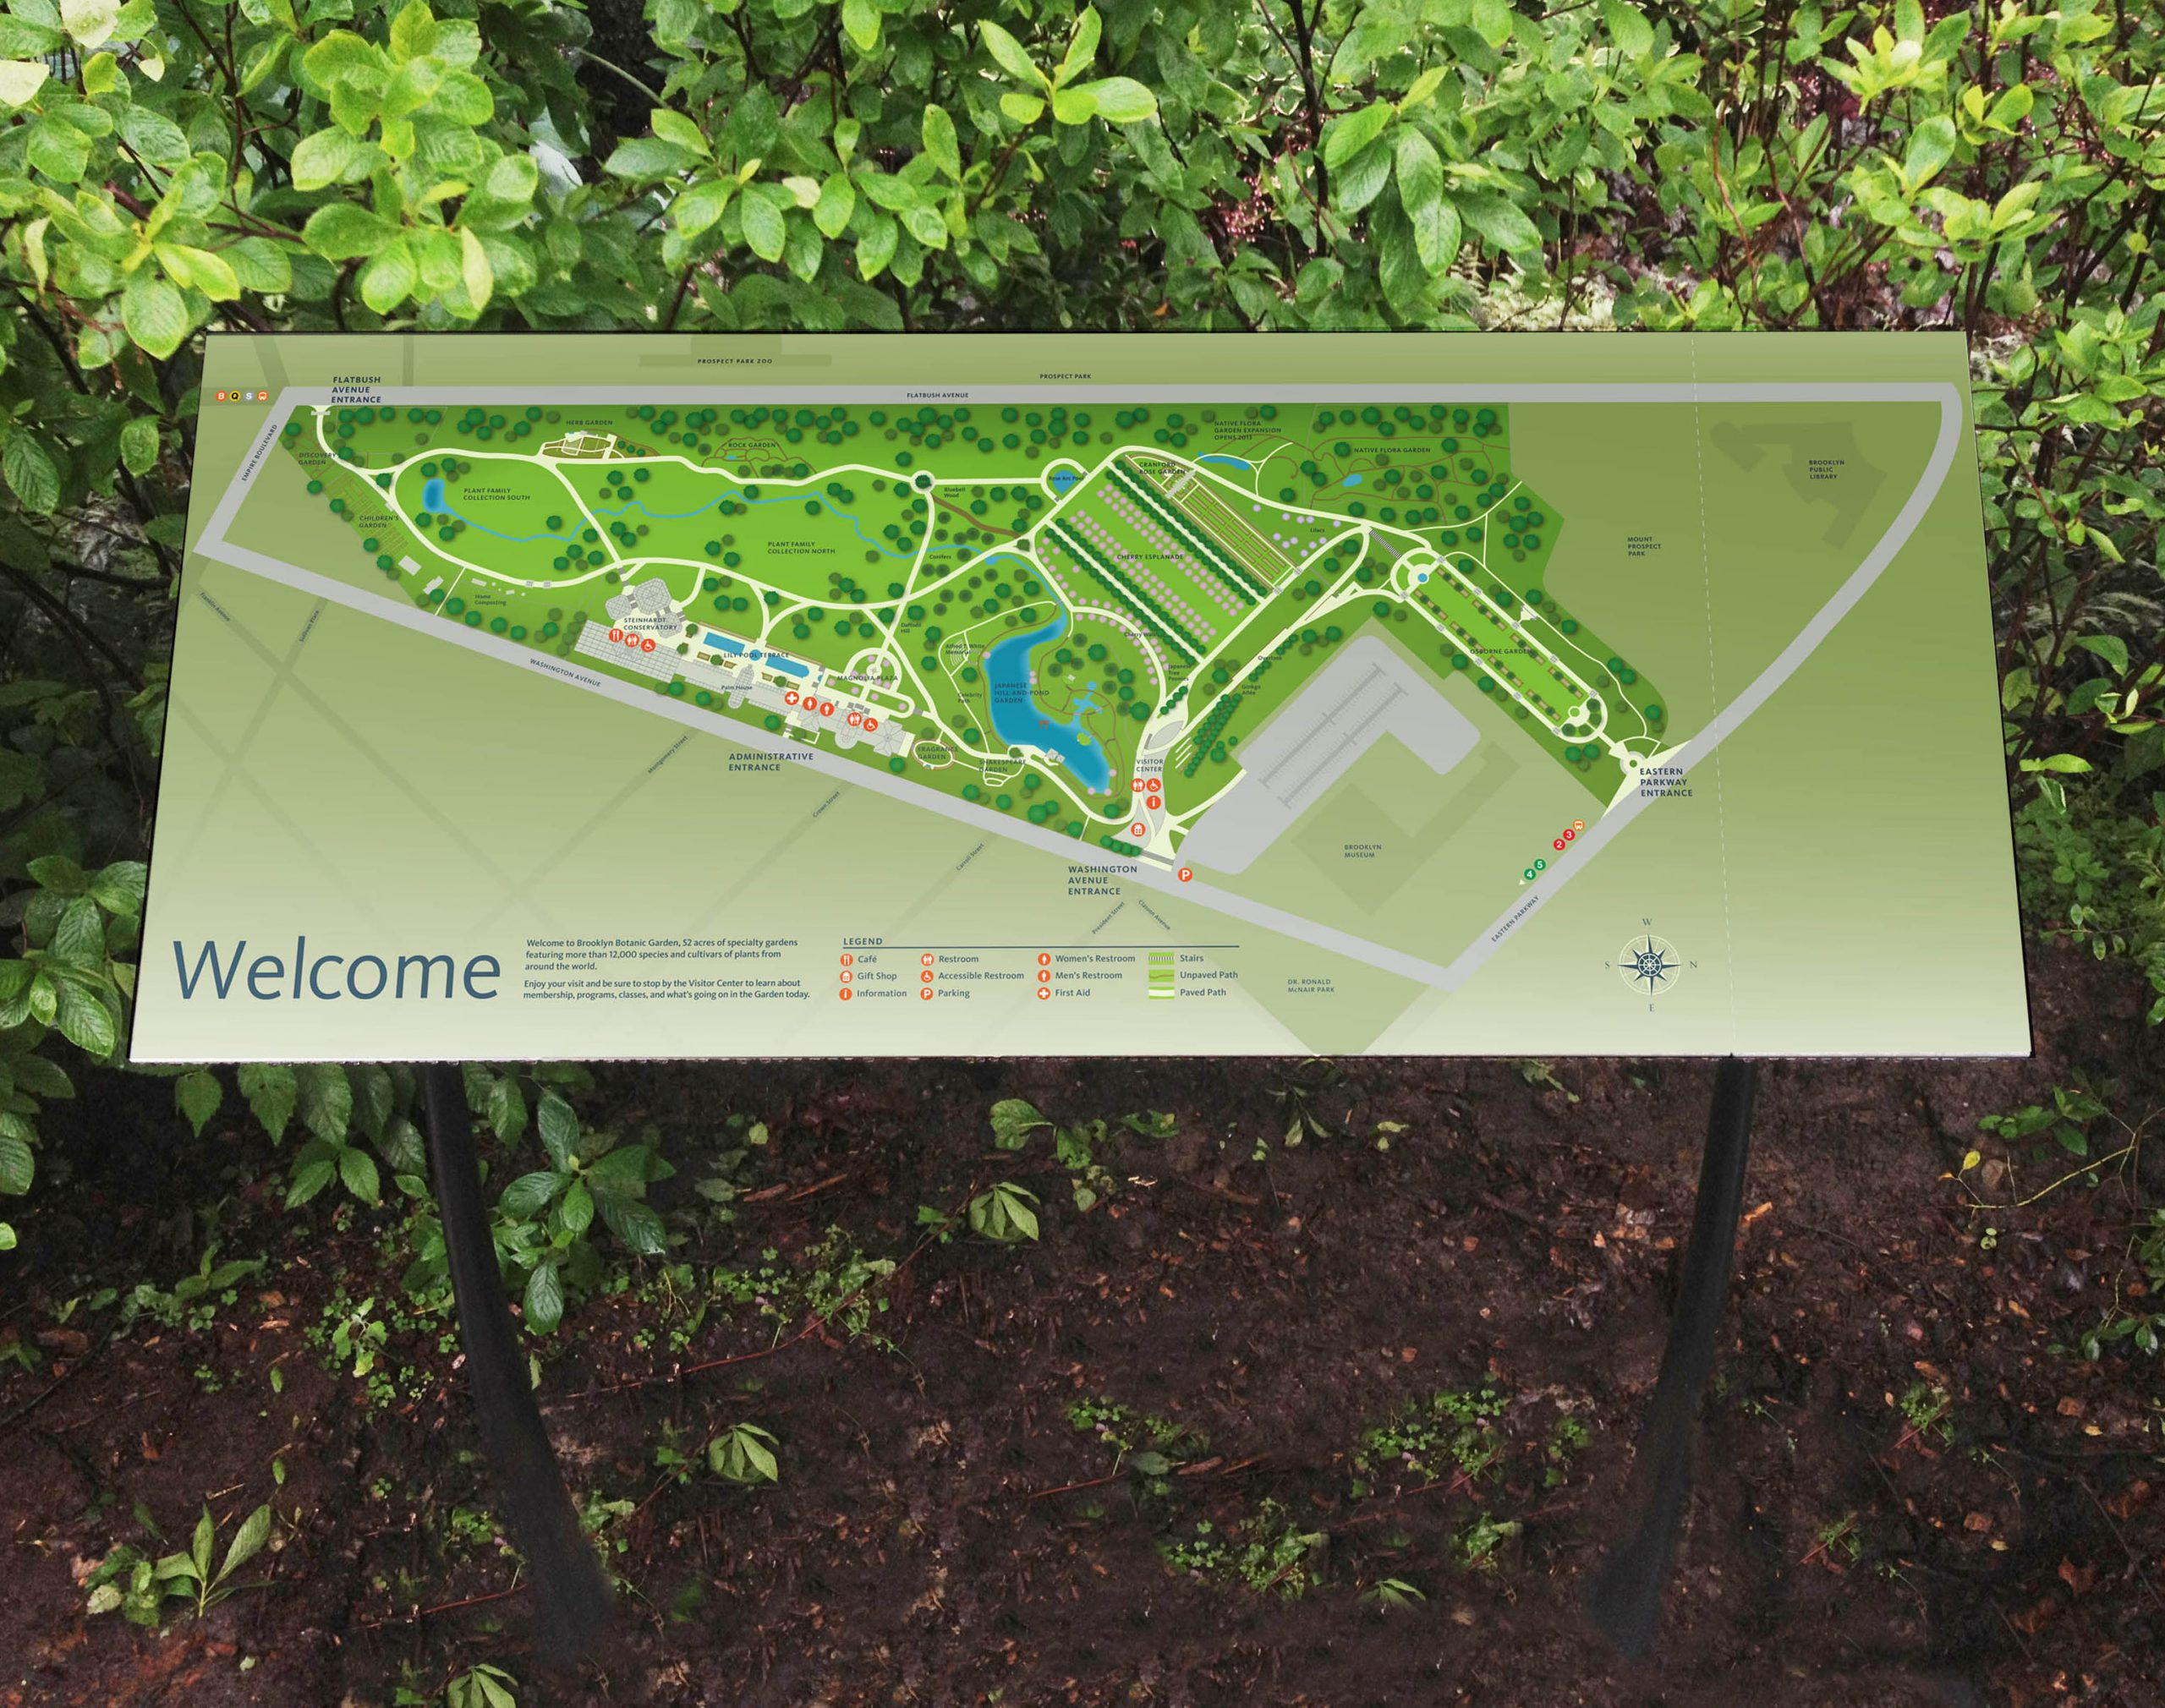 Project image 1 for Mapping, Brooklyn Botanic Garden